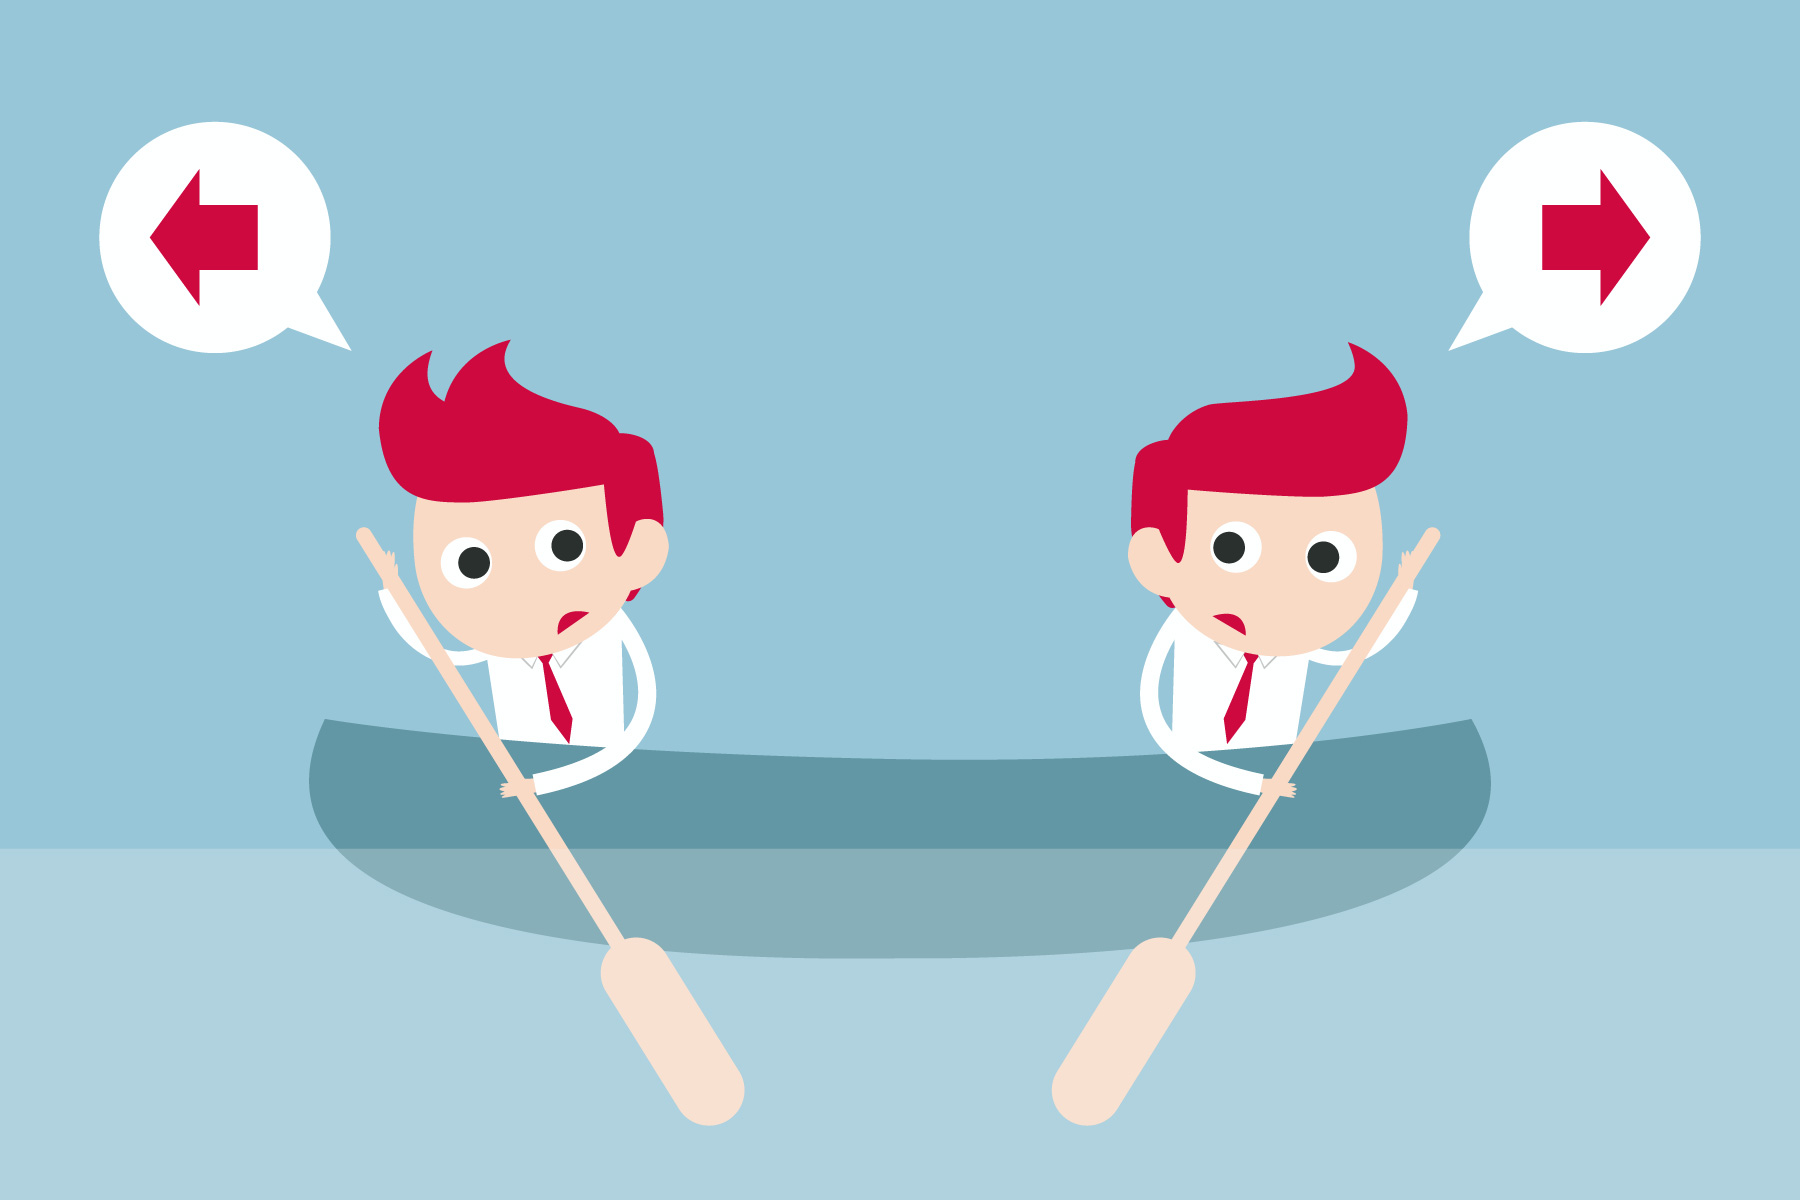 rowing in different directions does not build a strong corporate culture